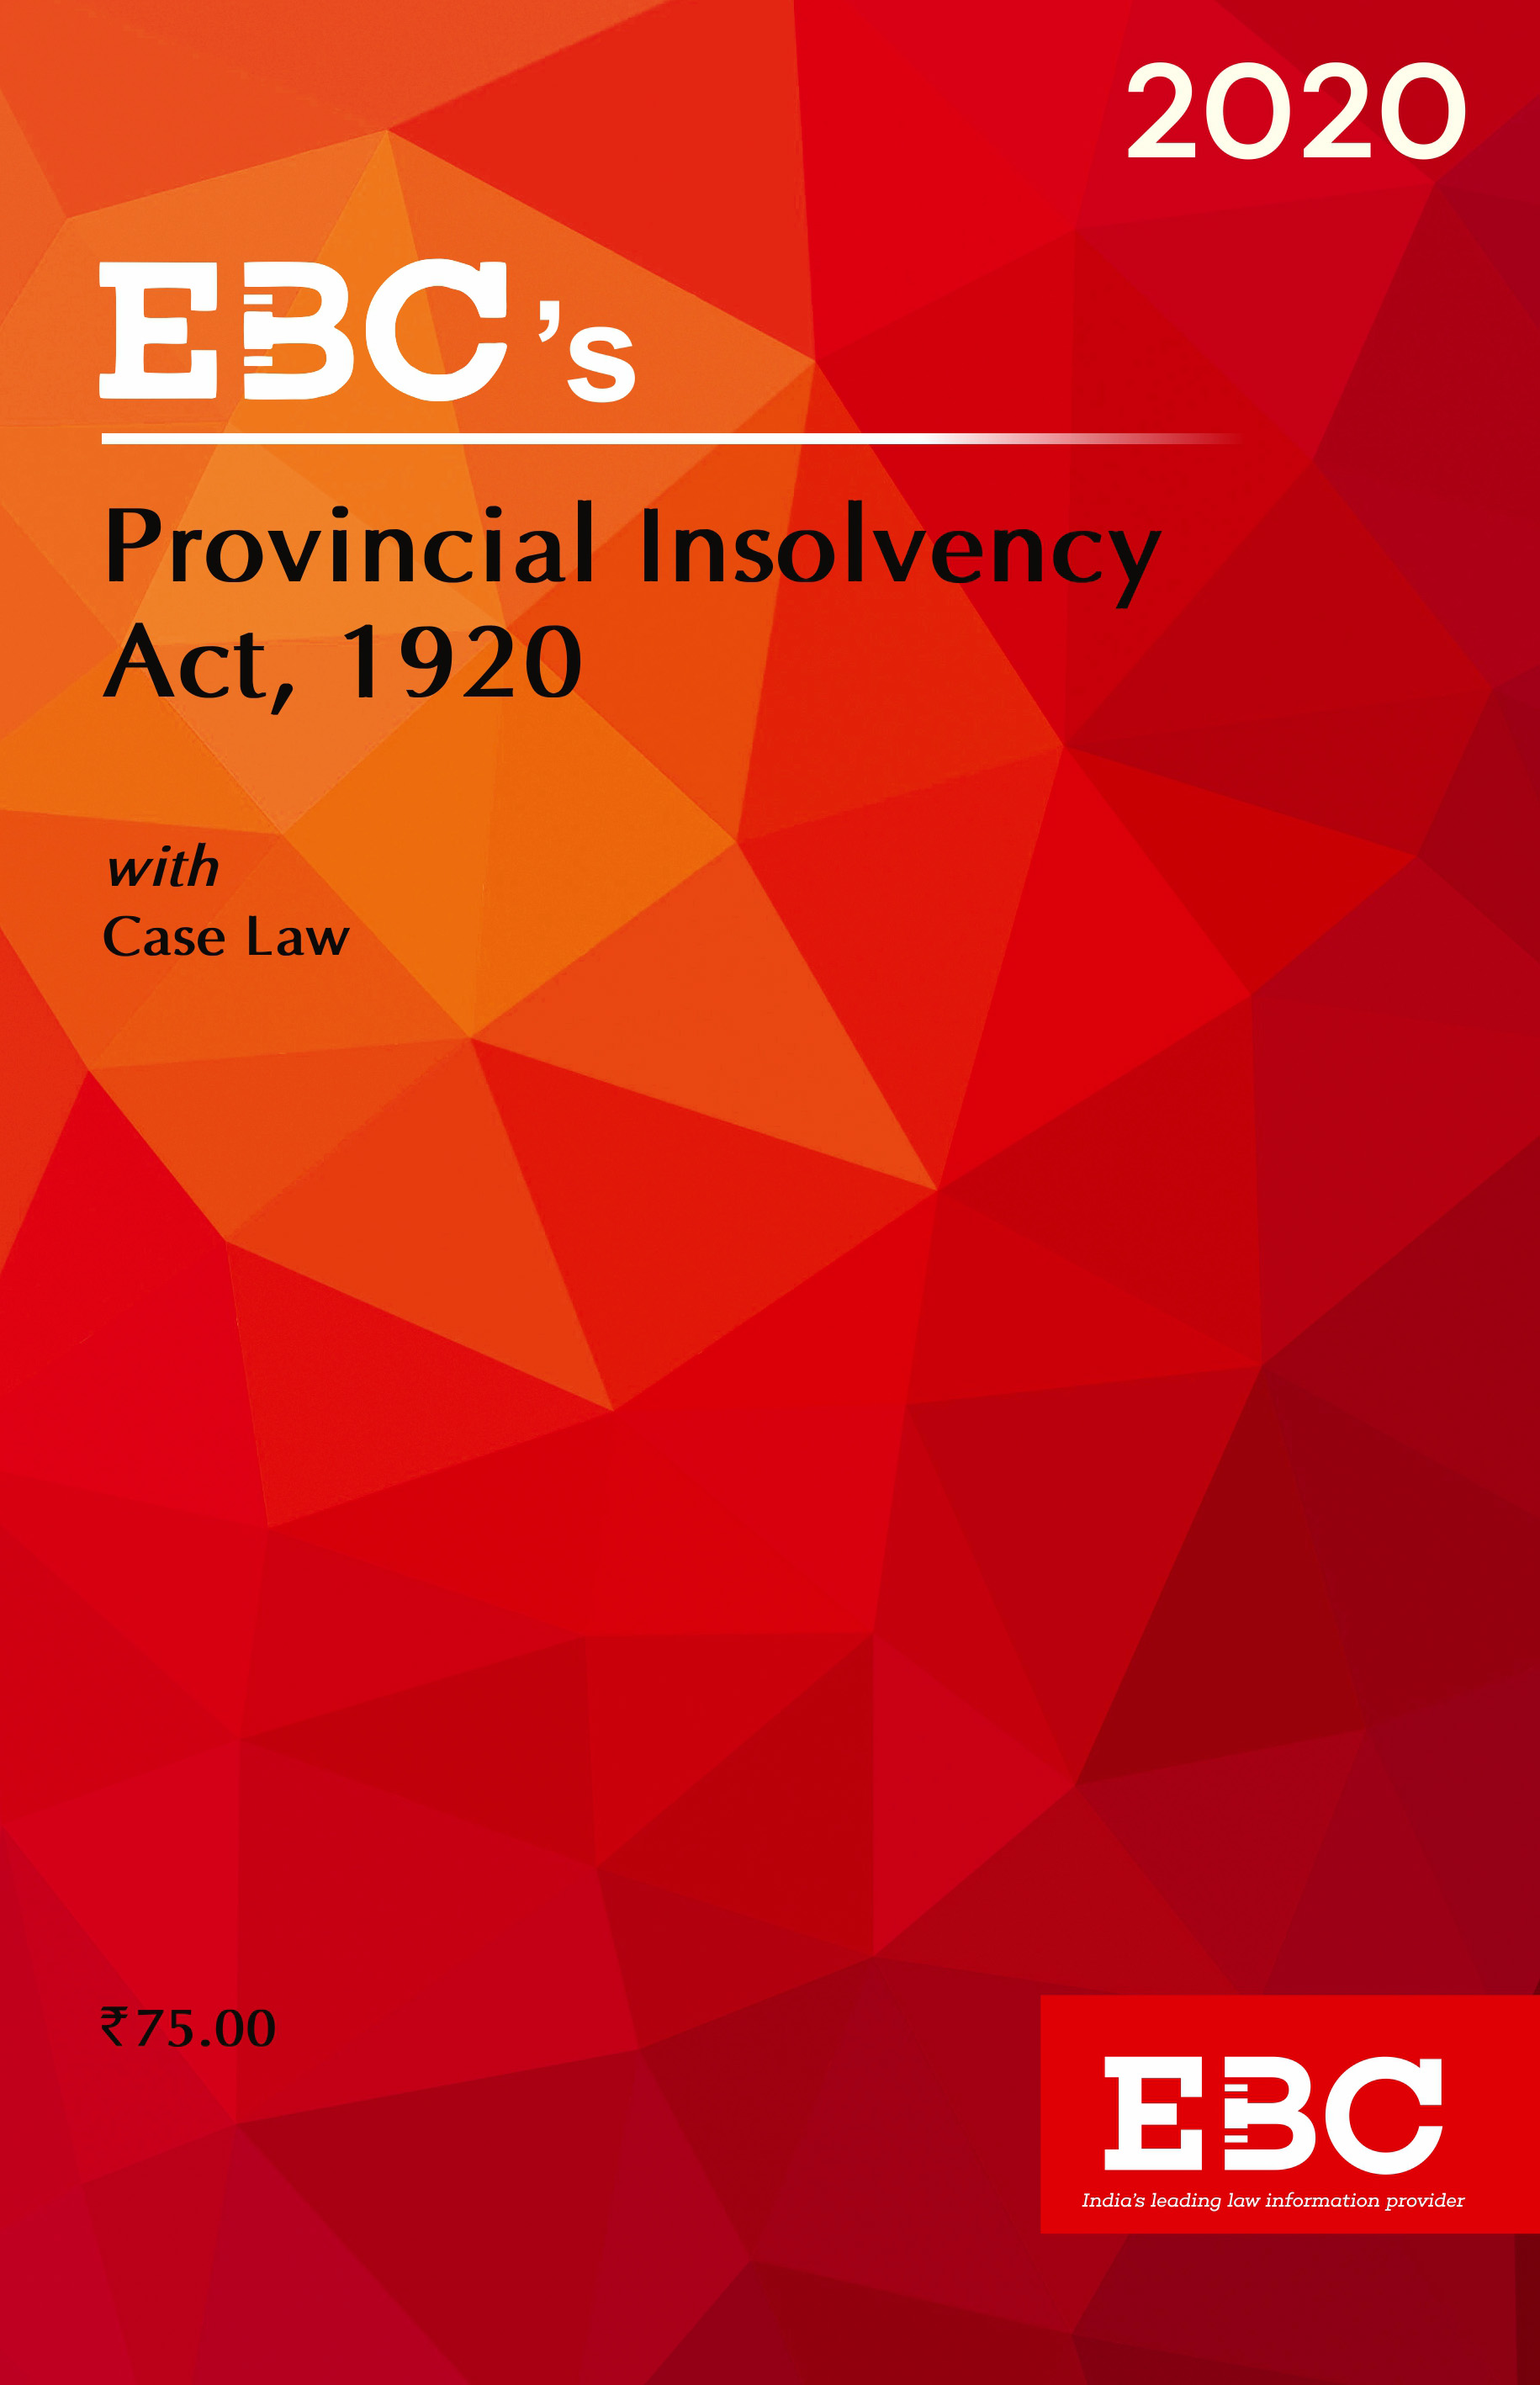 Provincial Insolvency Act, 1920